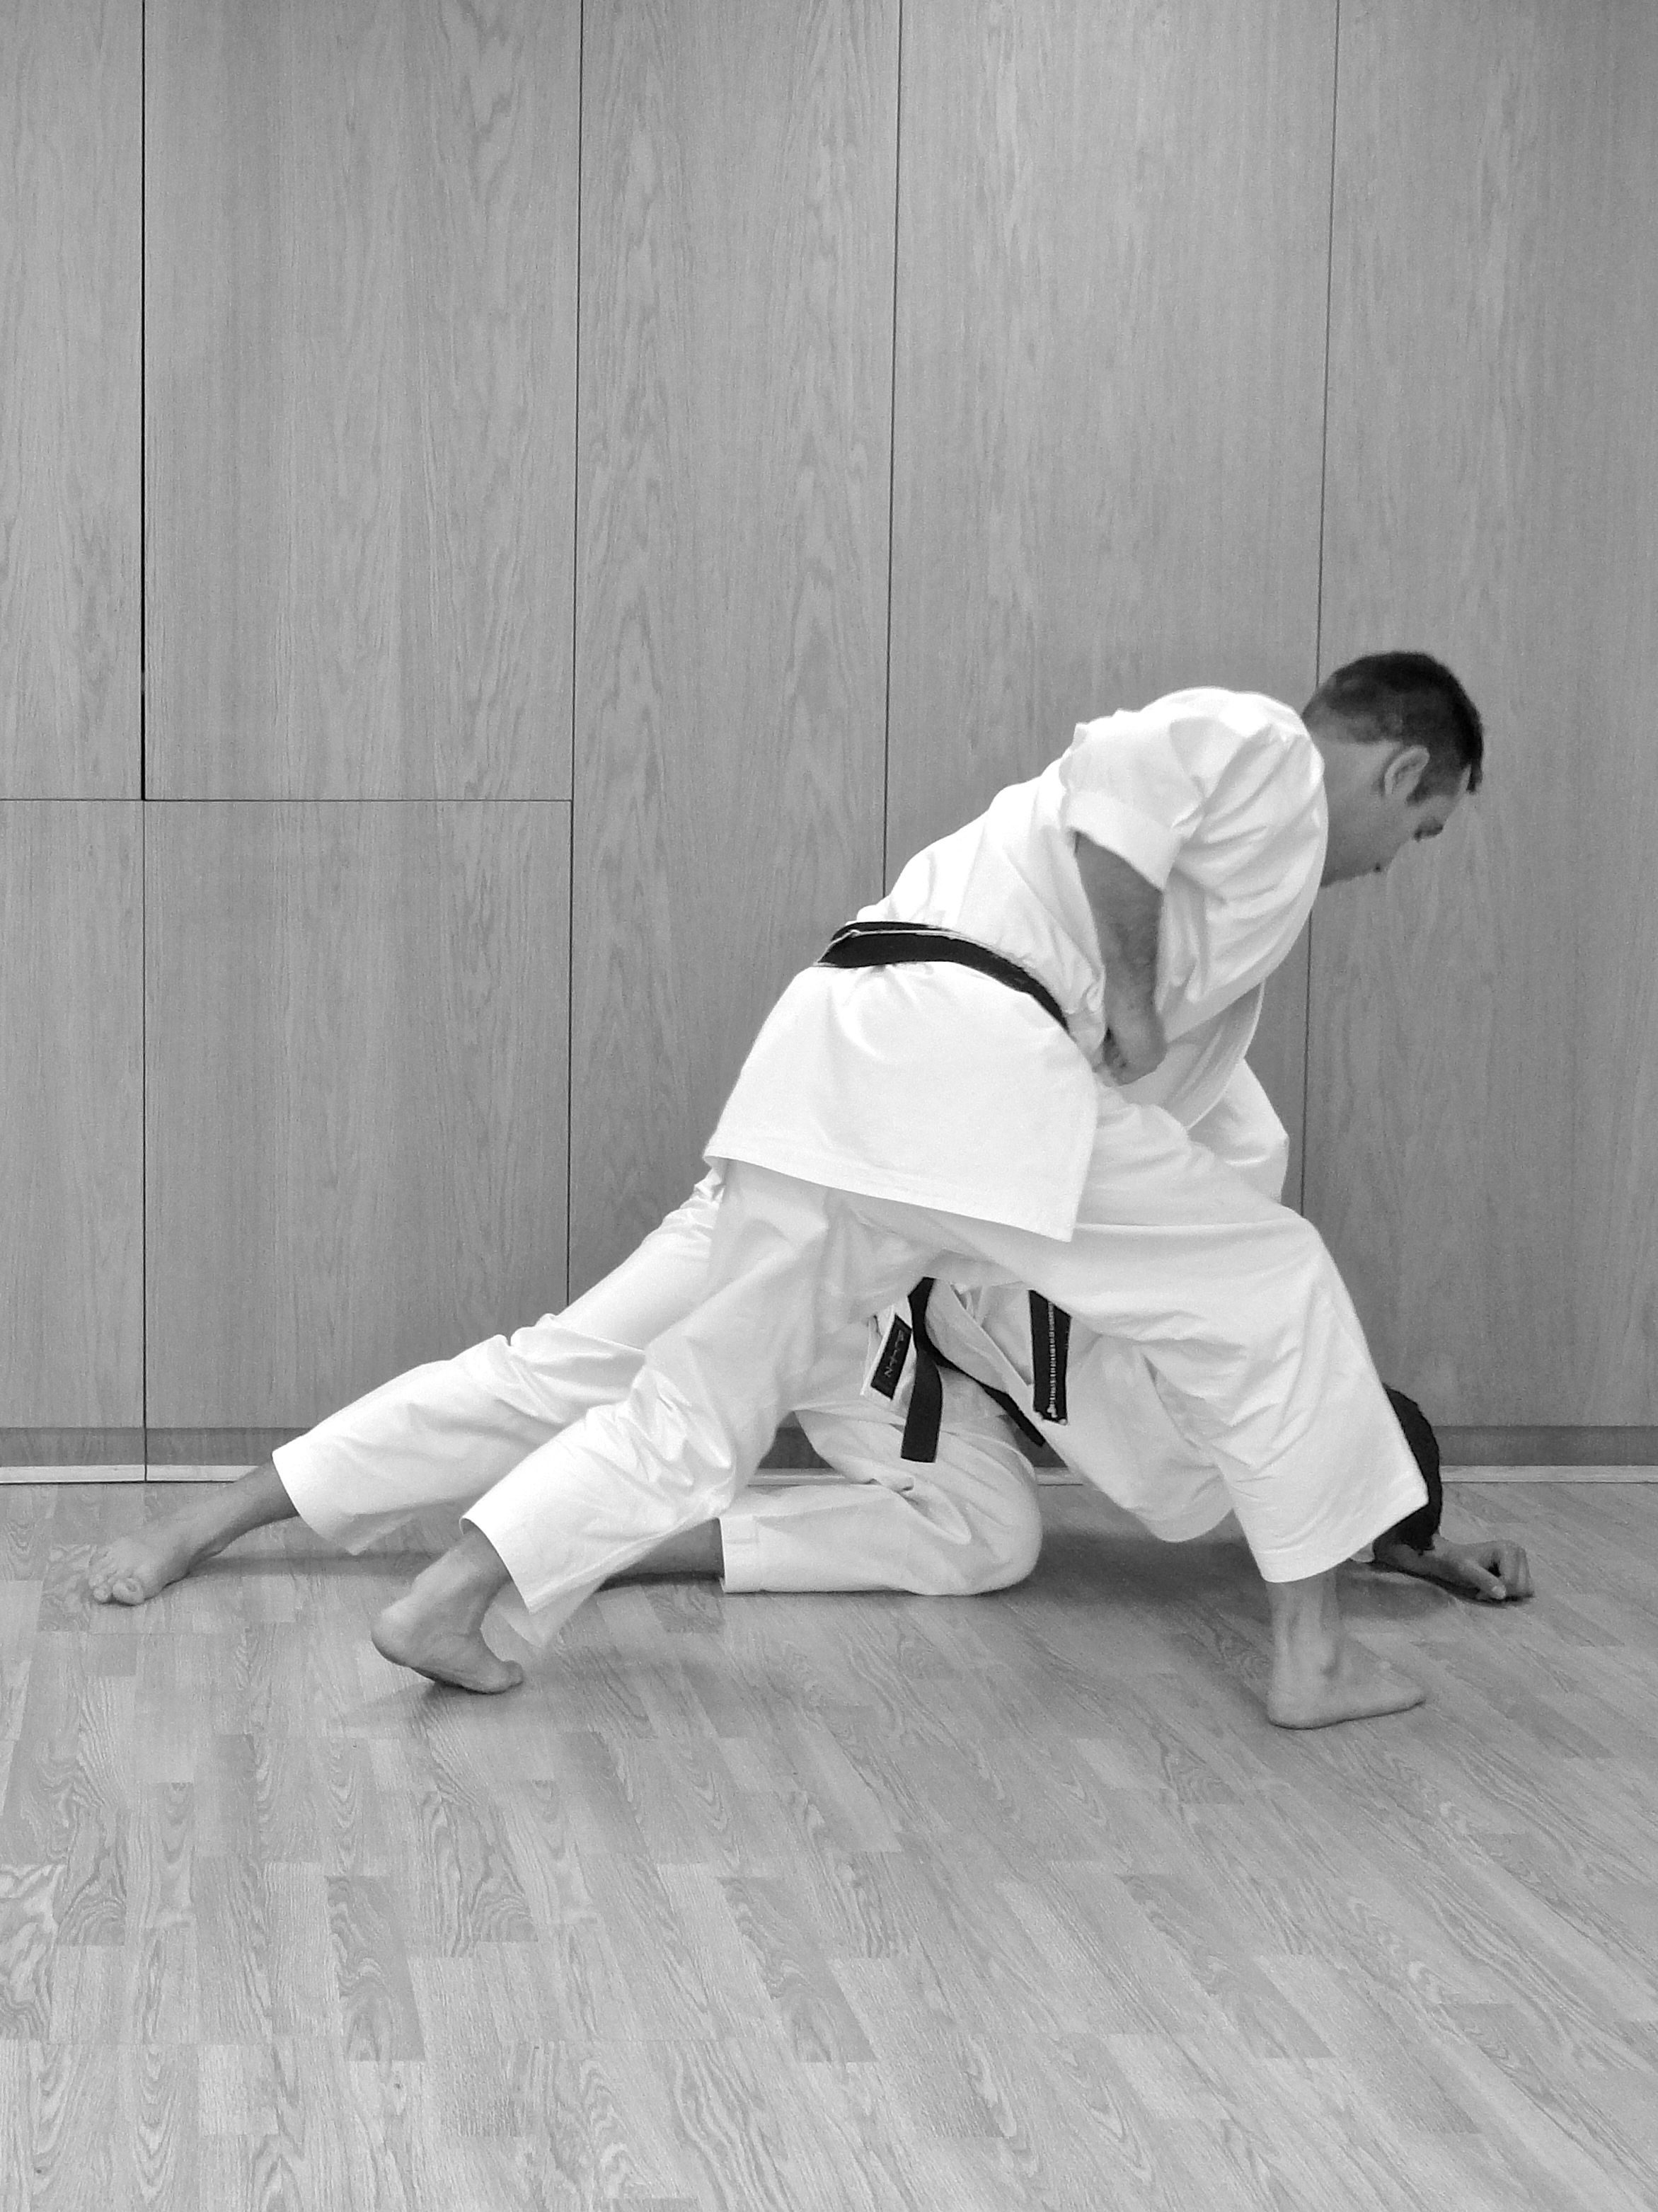 John Titchen Karate session